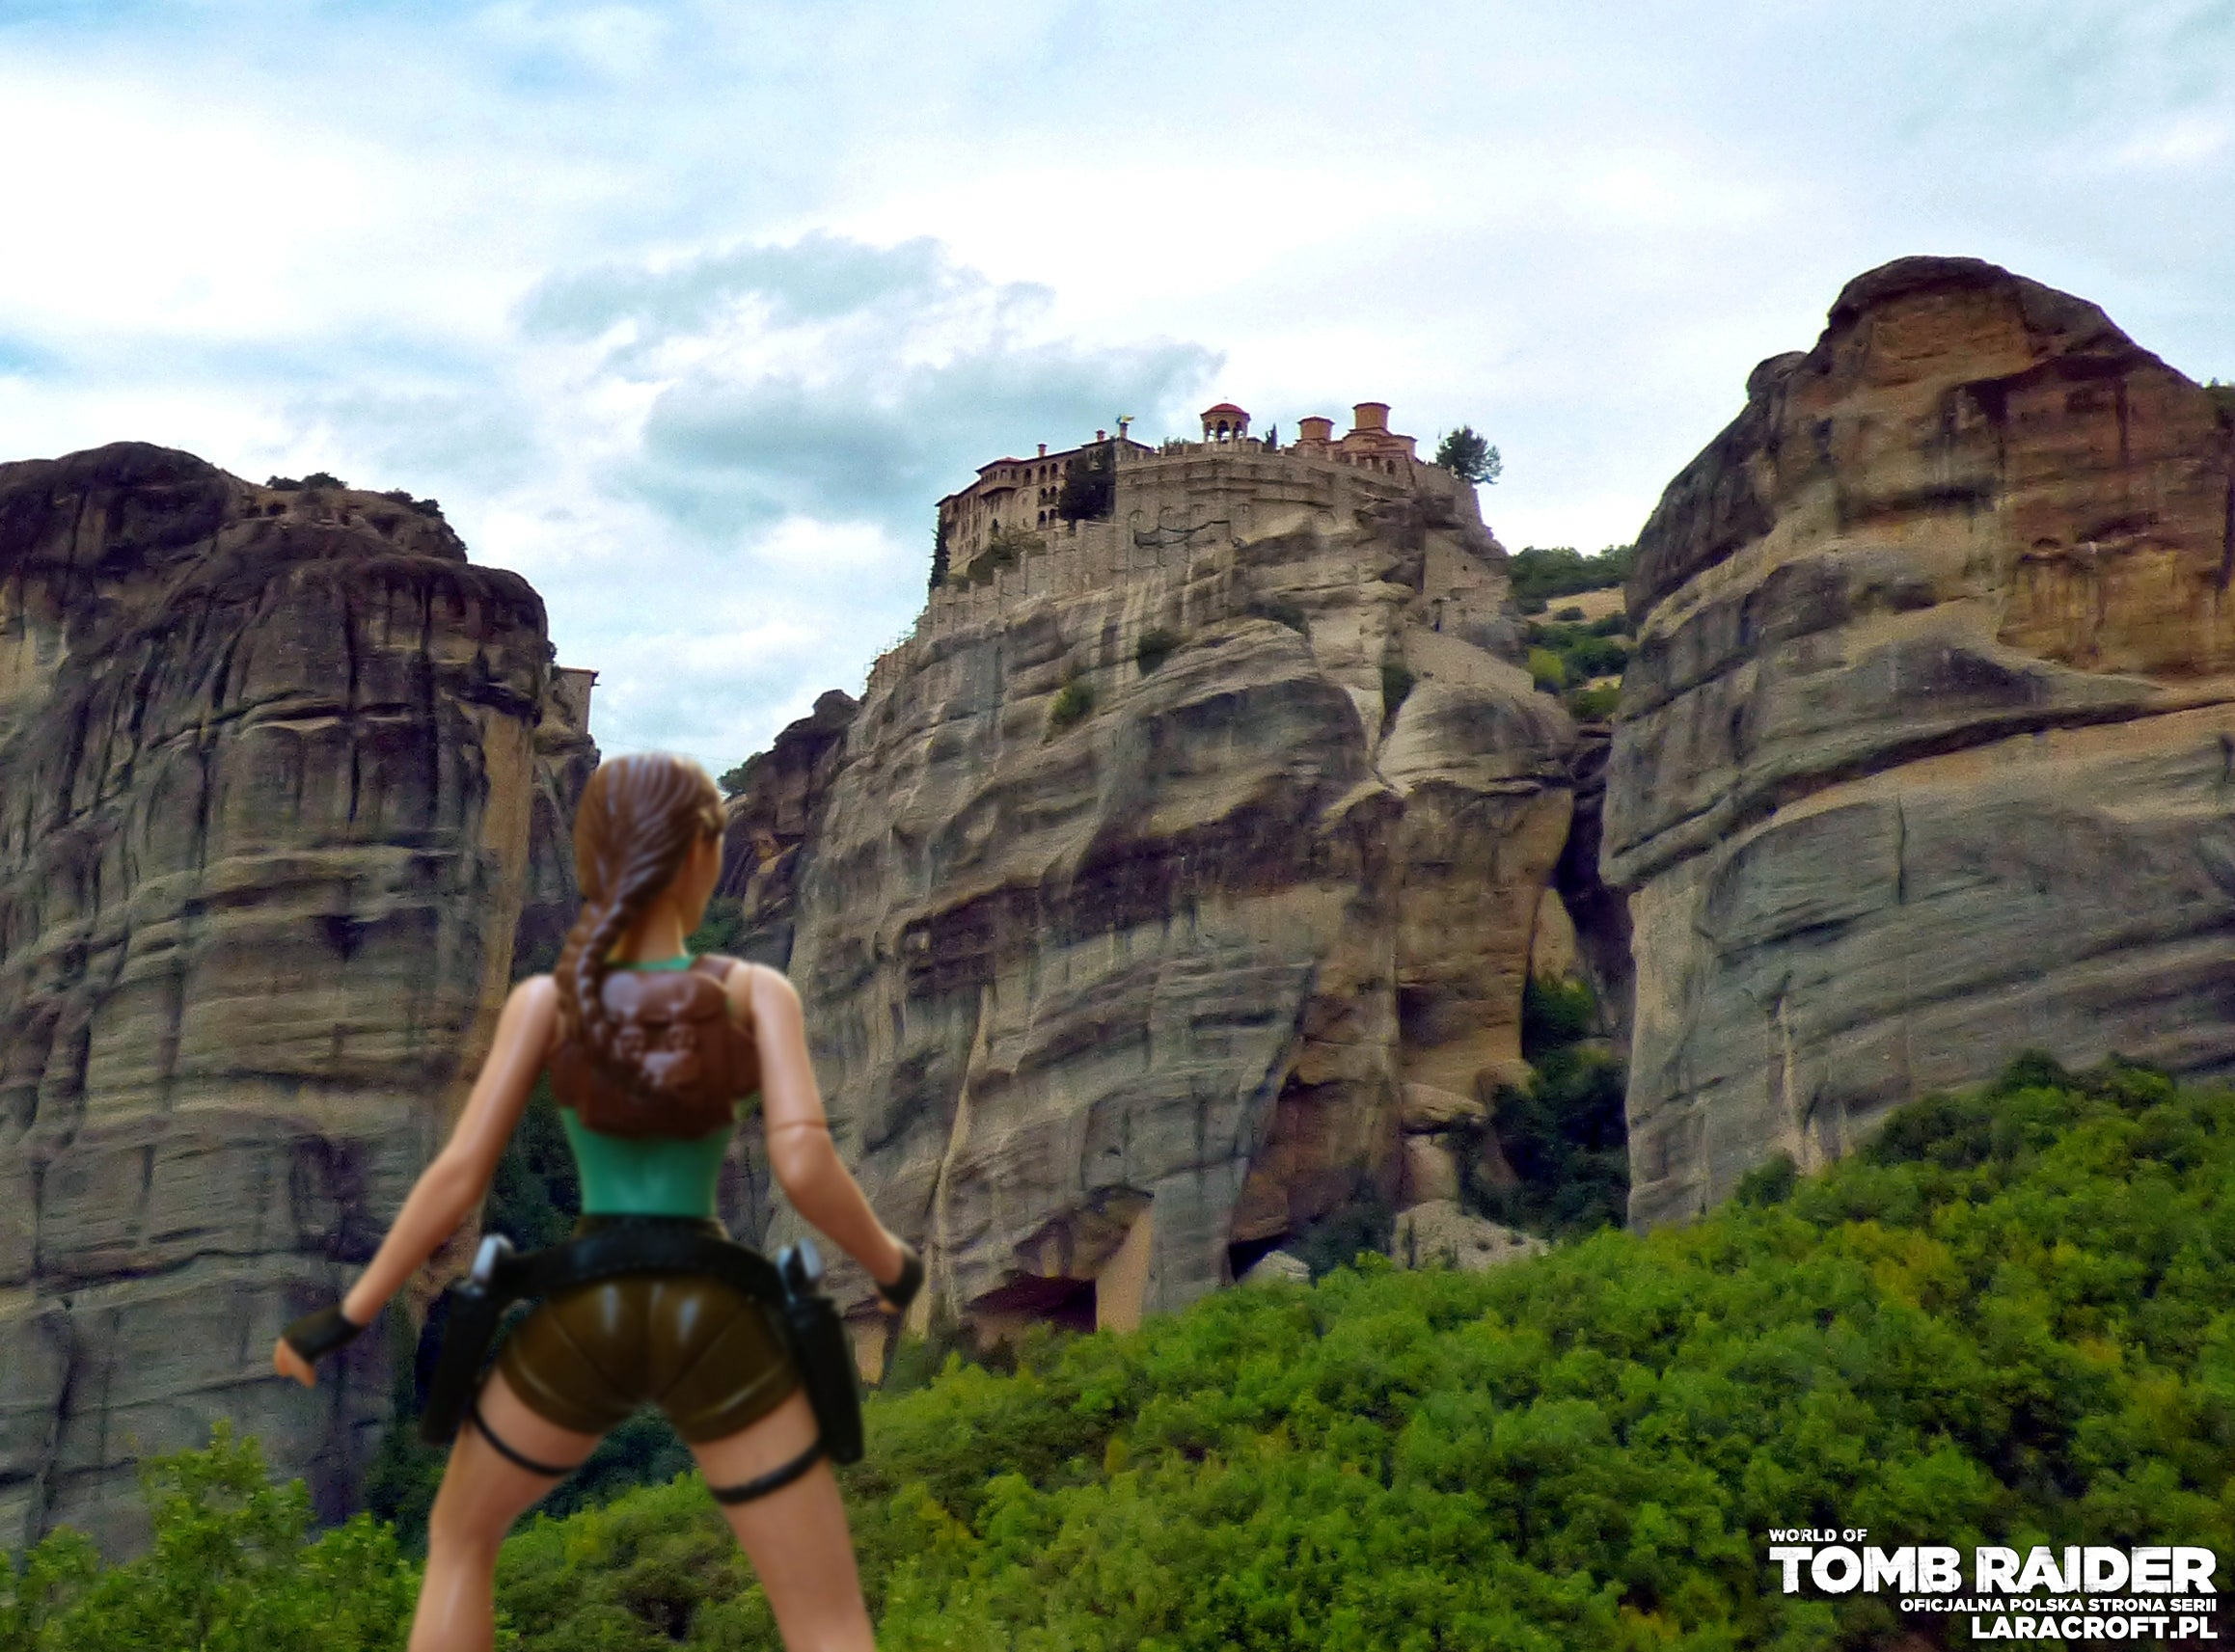 A photograph of a Lara Croft figure in front of the Meteora in Greece